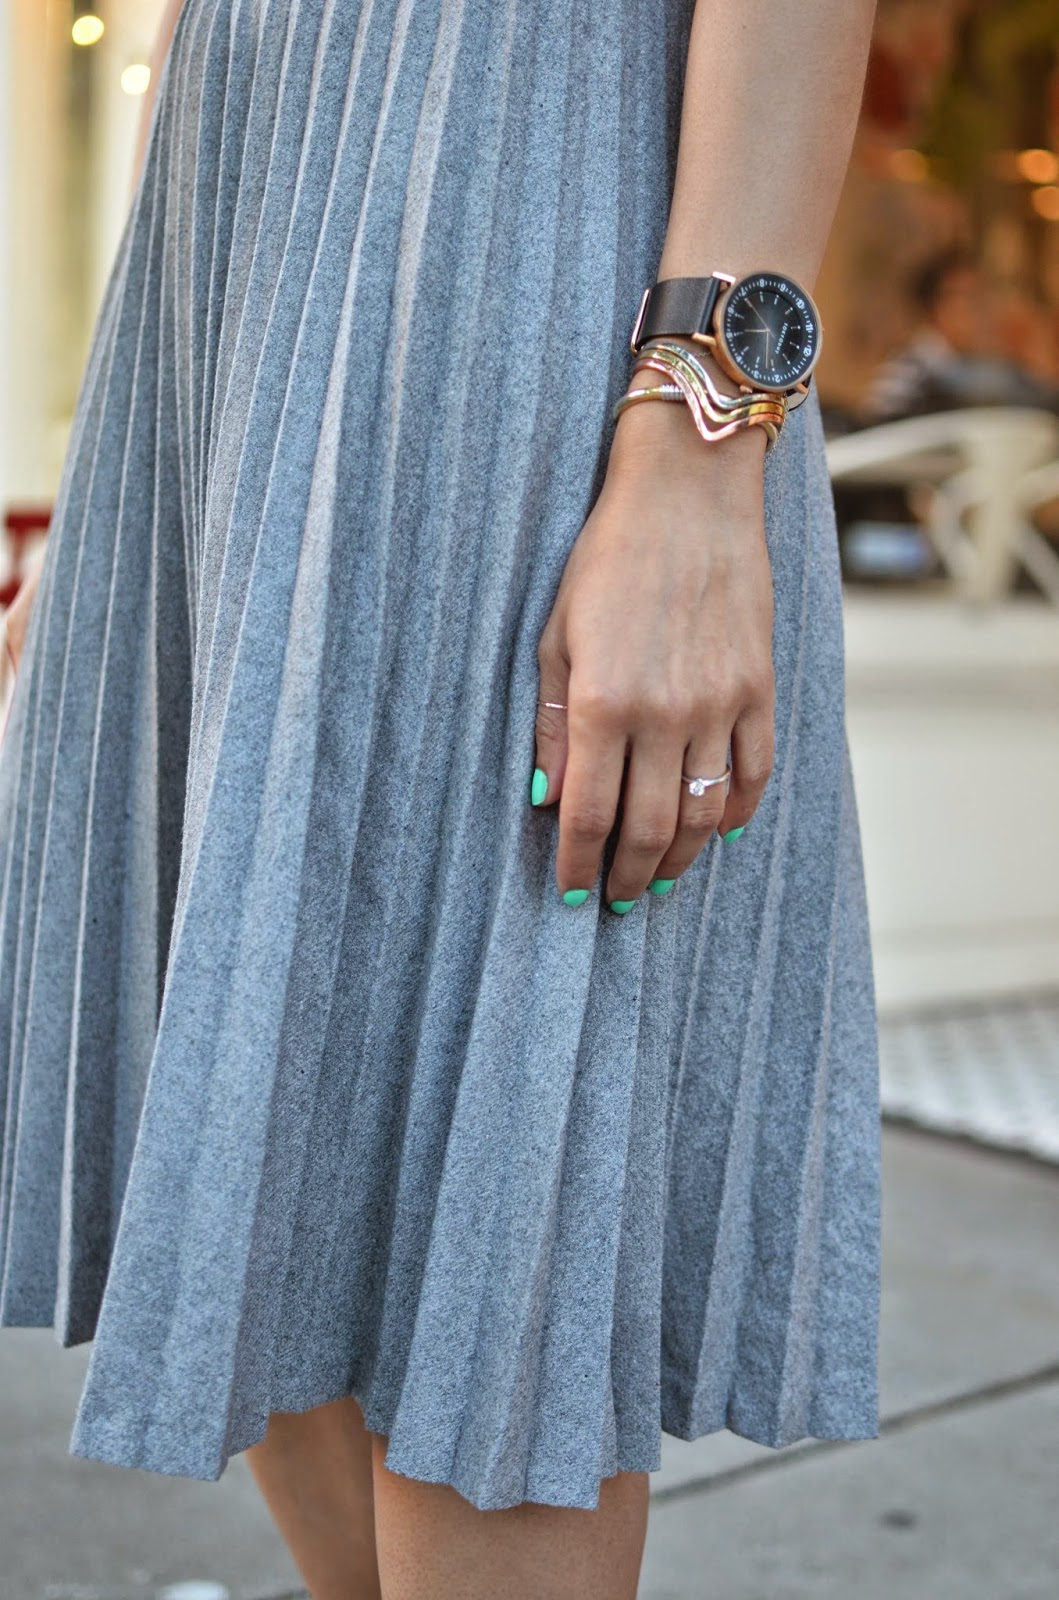 grey pleated skirt, Line & Dot, vintage bracelets, TOKYObay watch, aqua nail polish, feminine style